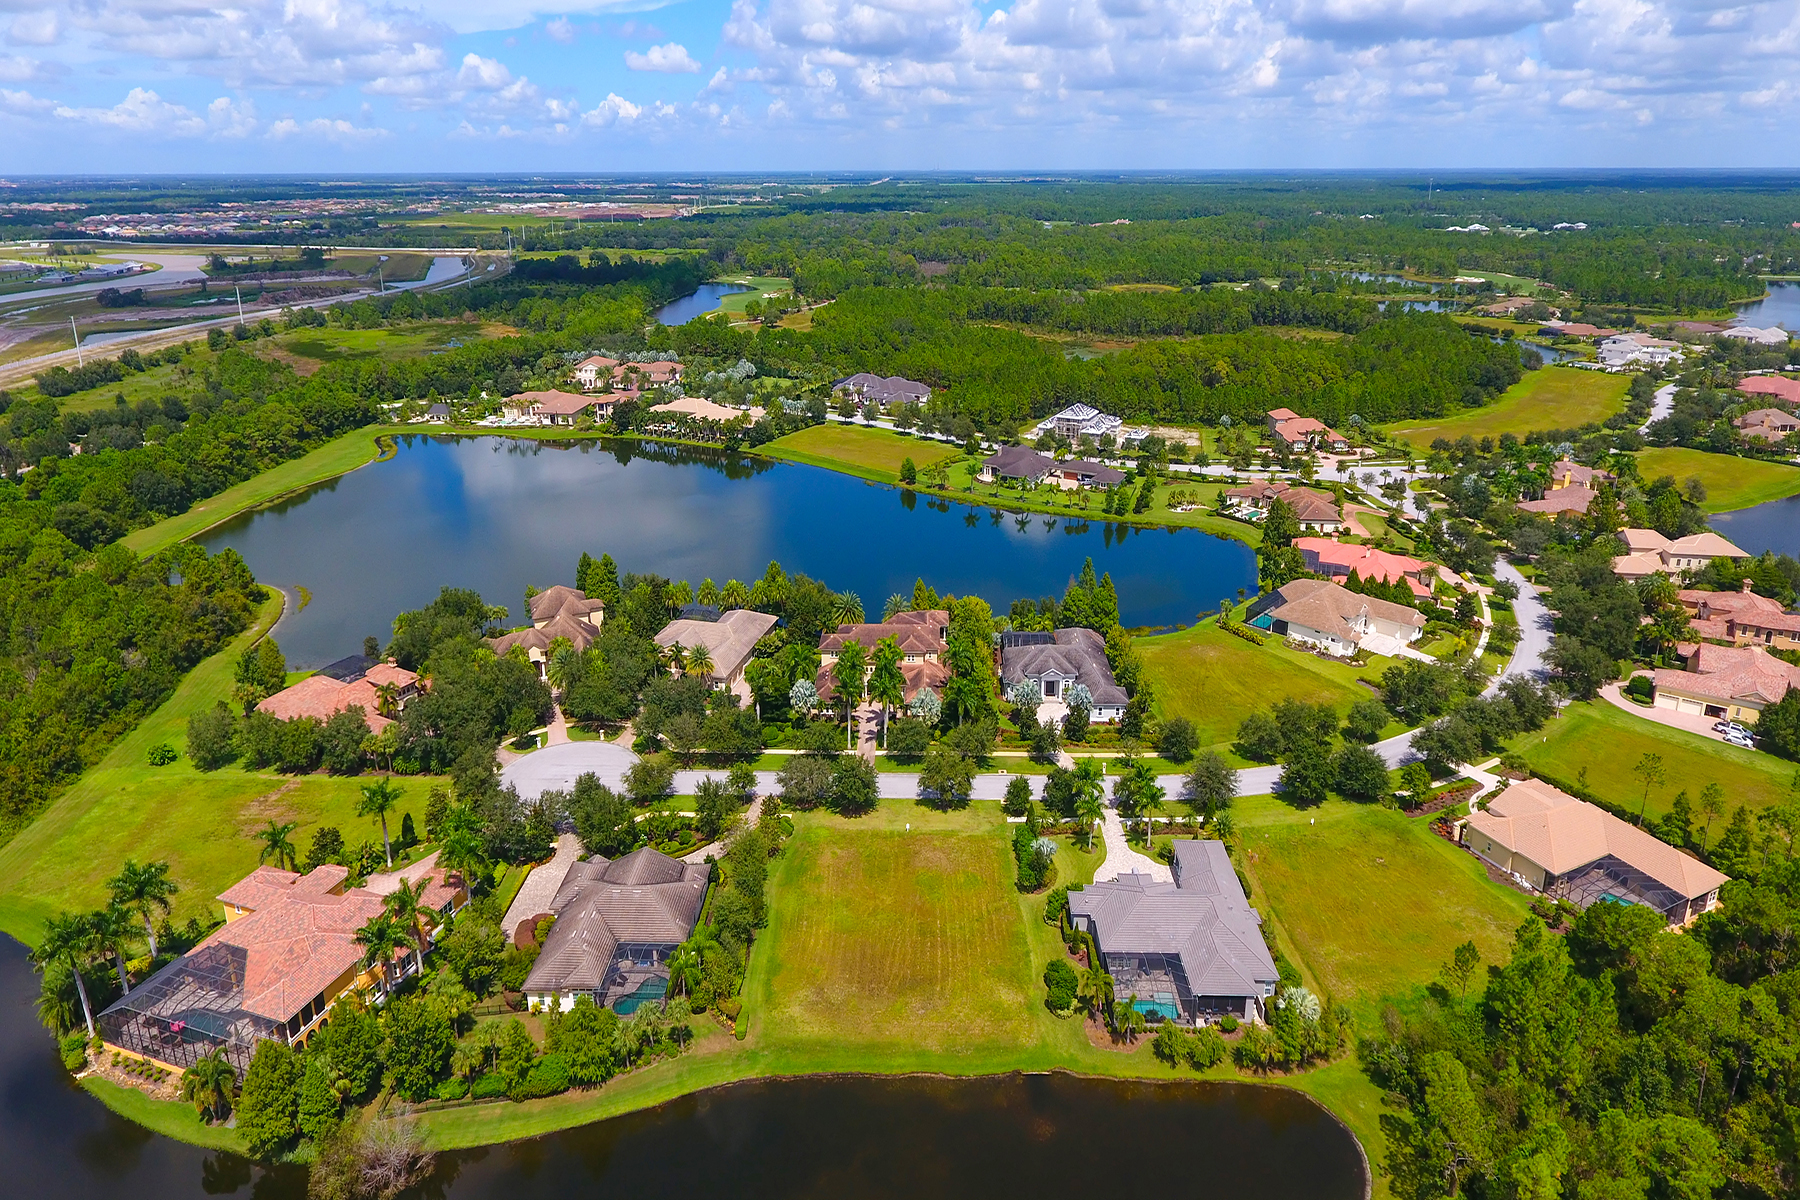 Land for Sale at THE CONCESSION 8333 Farington Ct Ct, Bradenton, Florida 34202 United States